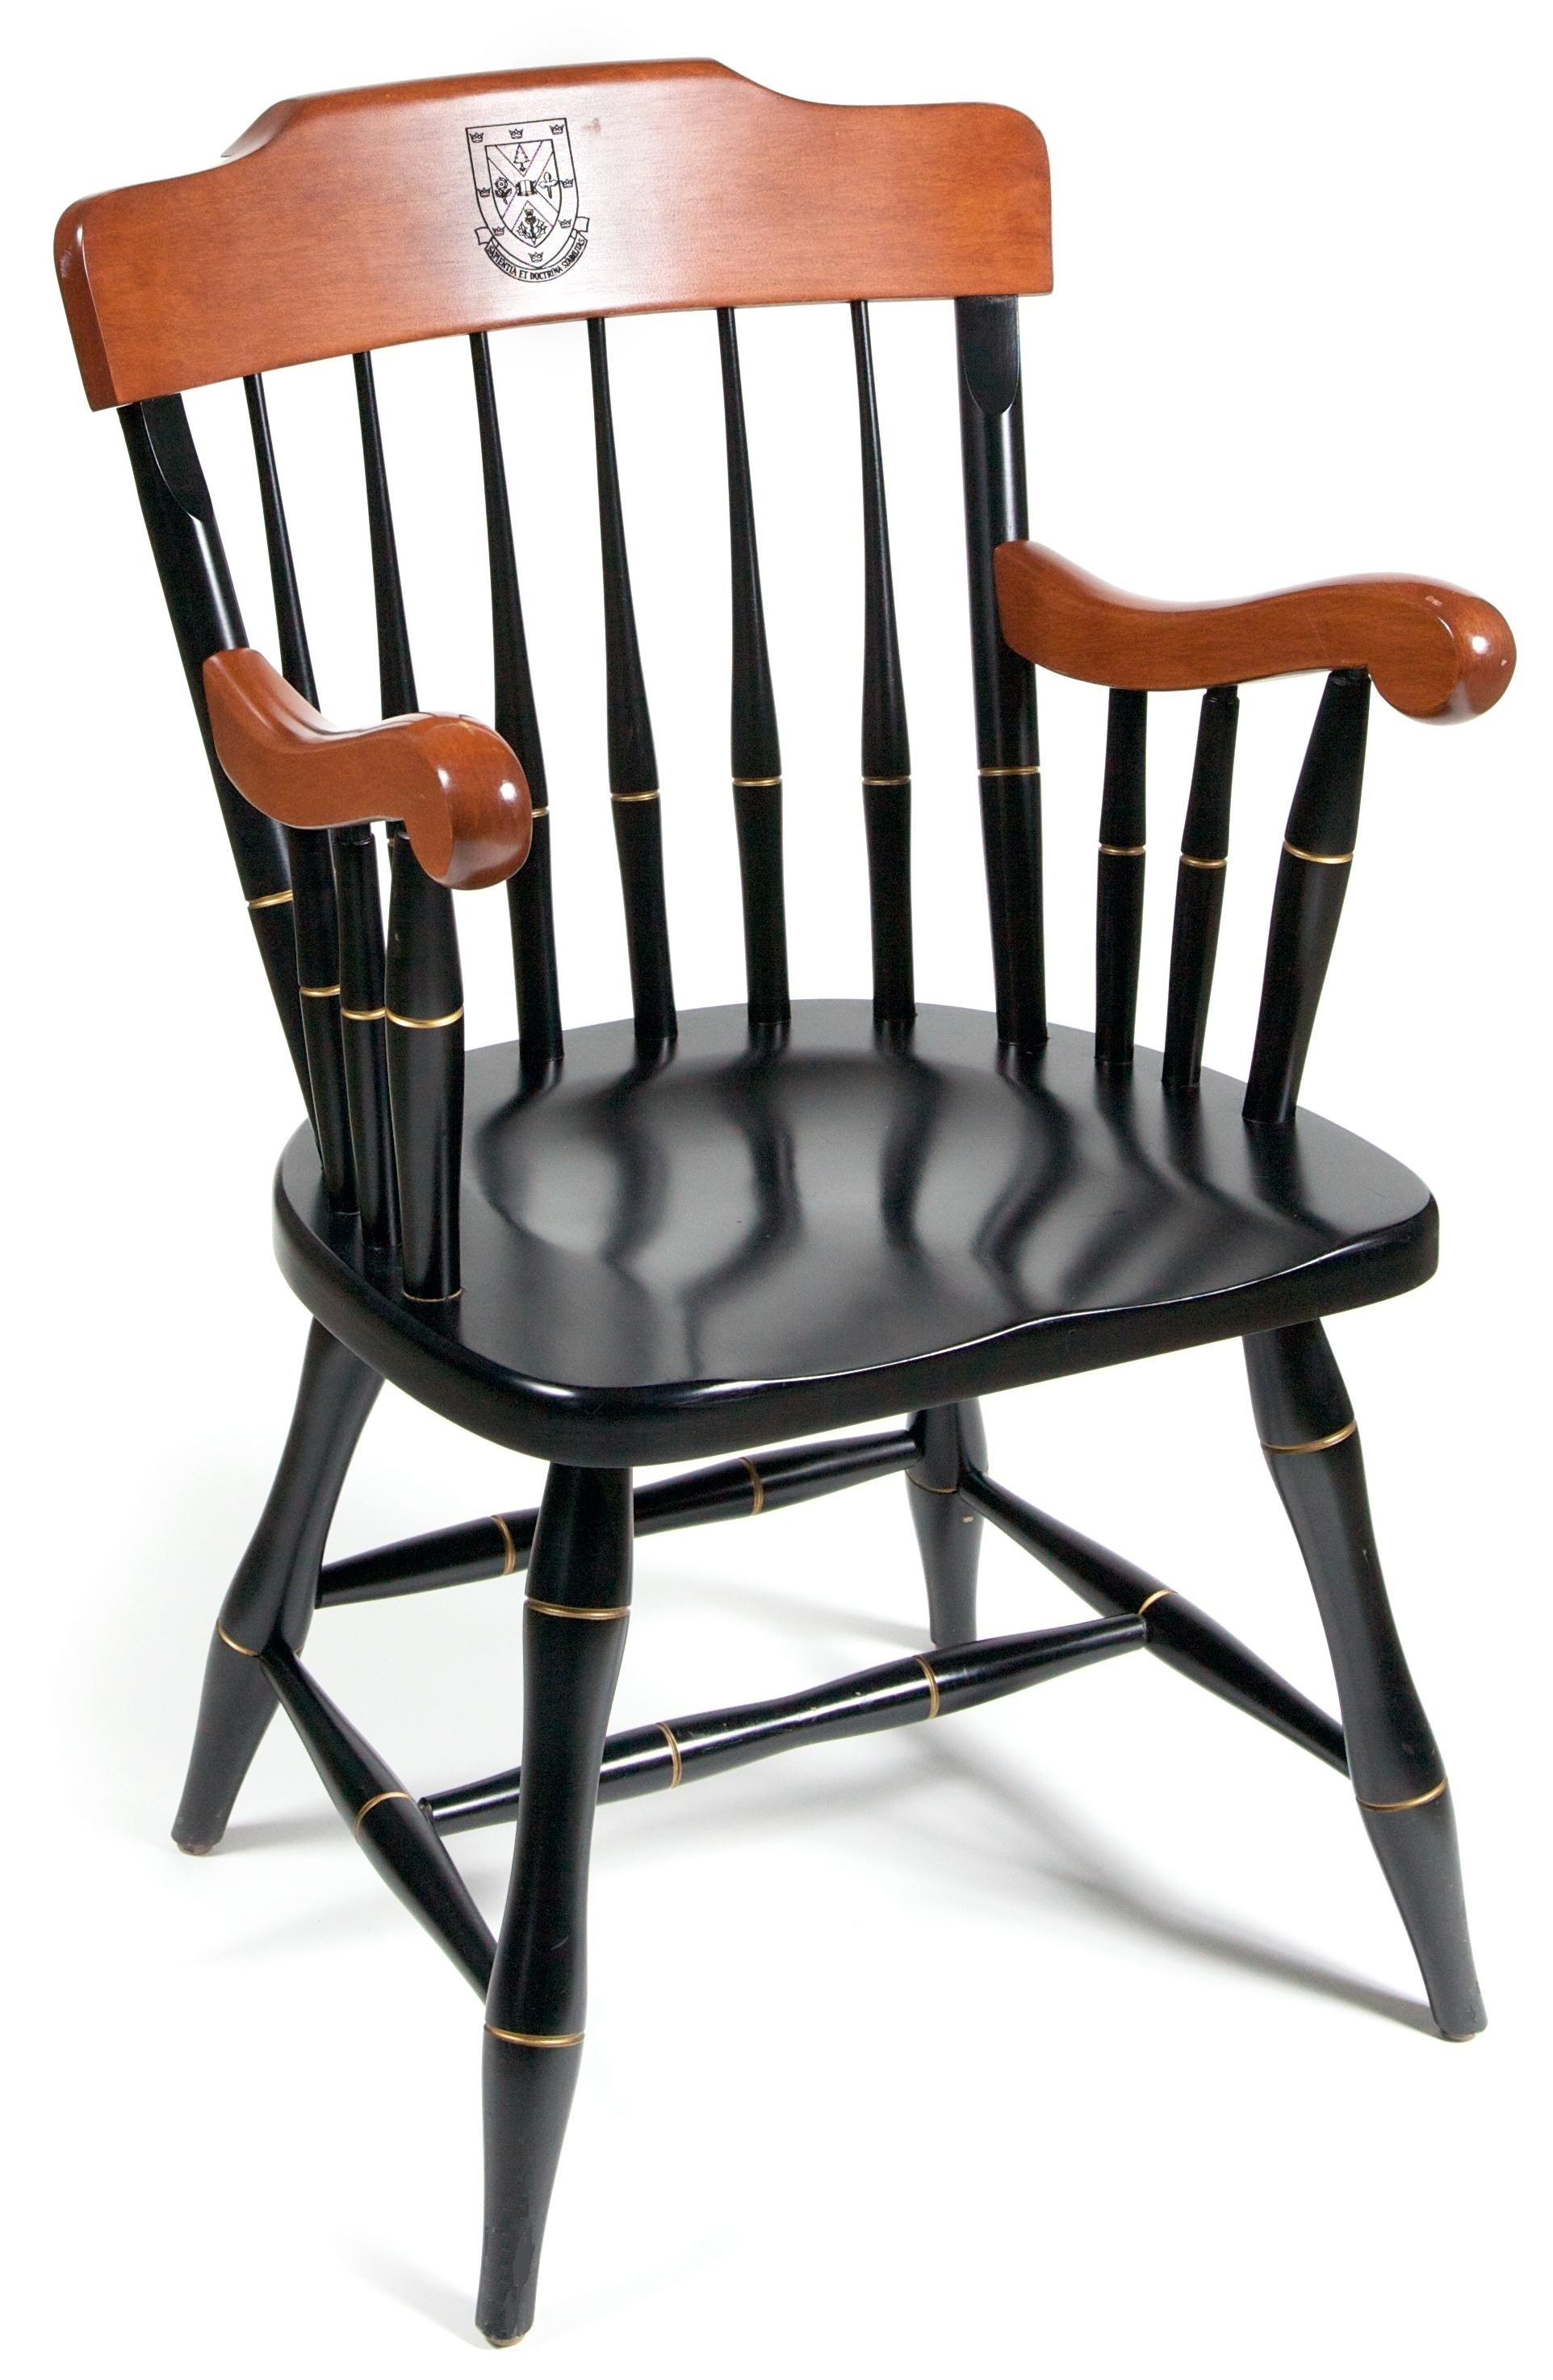 Queen's University Armchair image